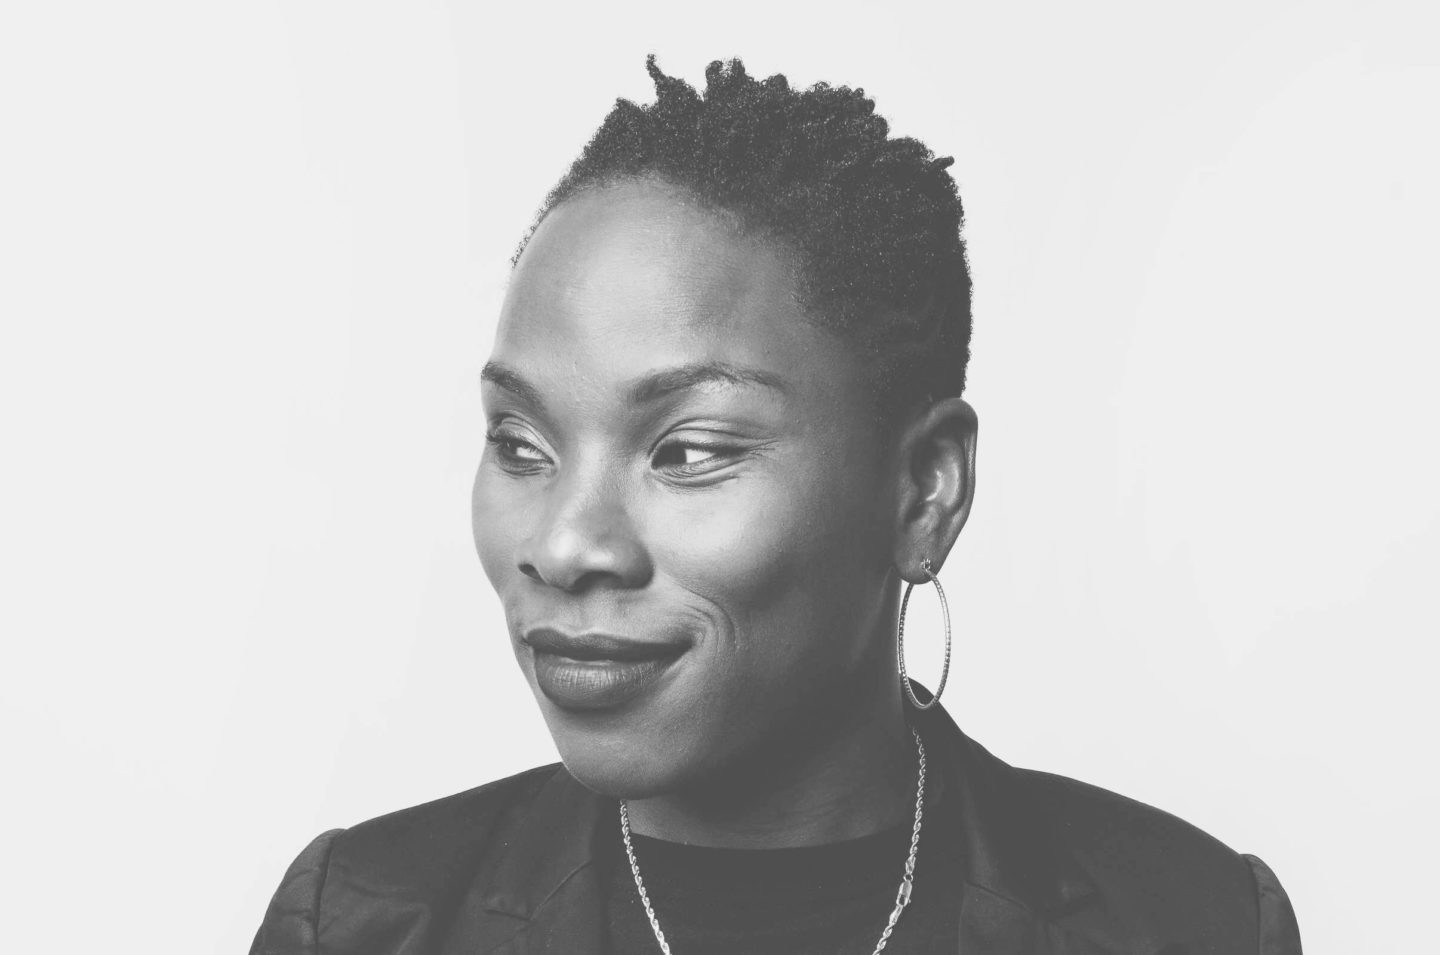 Luvvie and the Black digital intelligentsia I don't trust